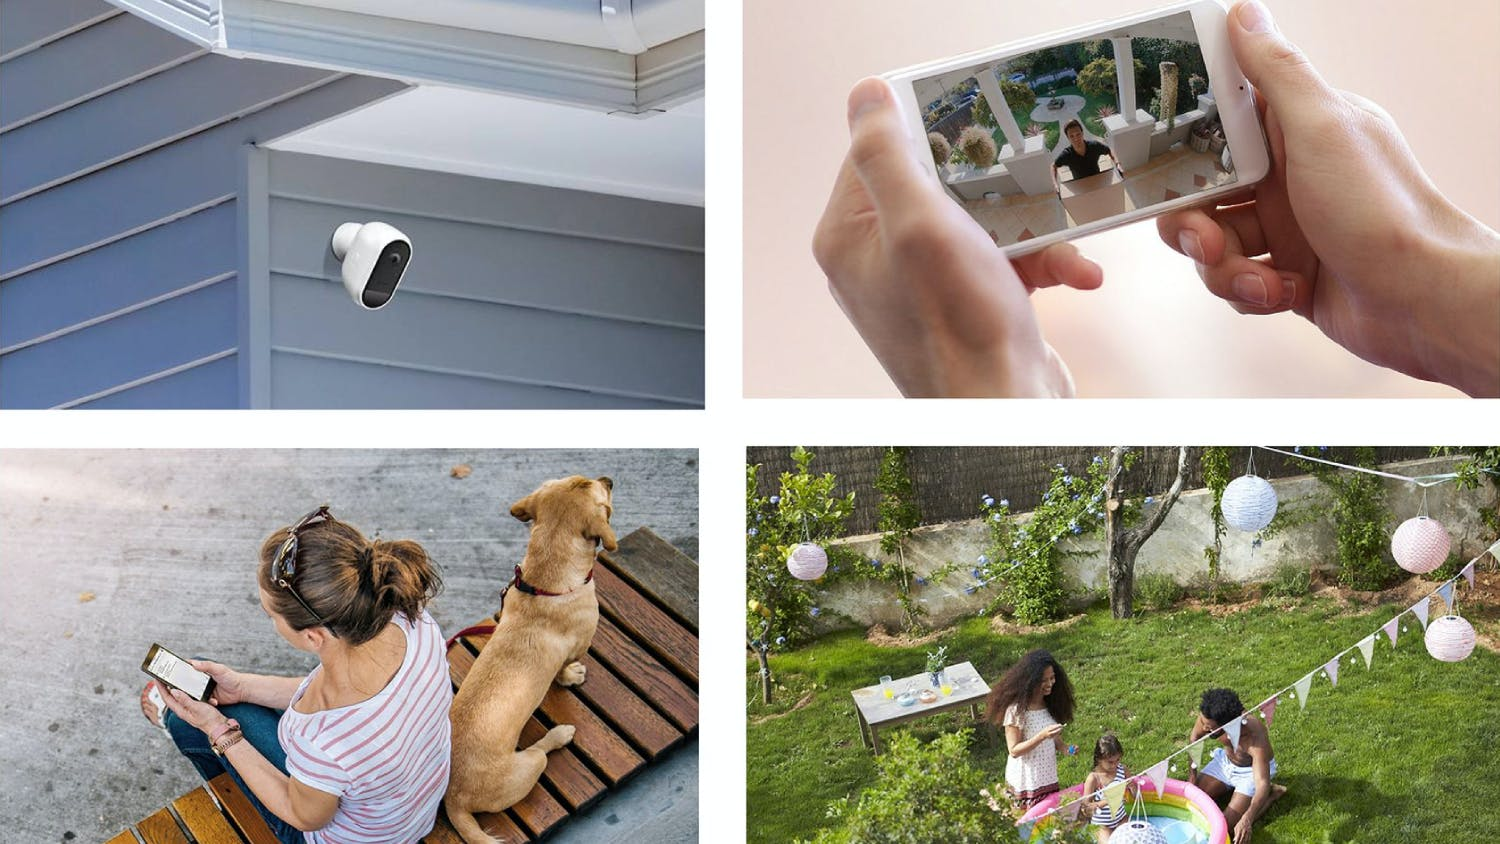 Swann SWIFI 1080p Wire-Free Outdoor Security Camera White - 4 Pack